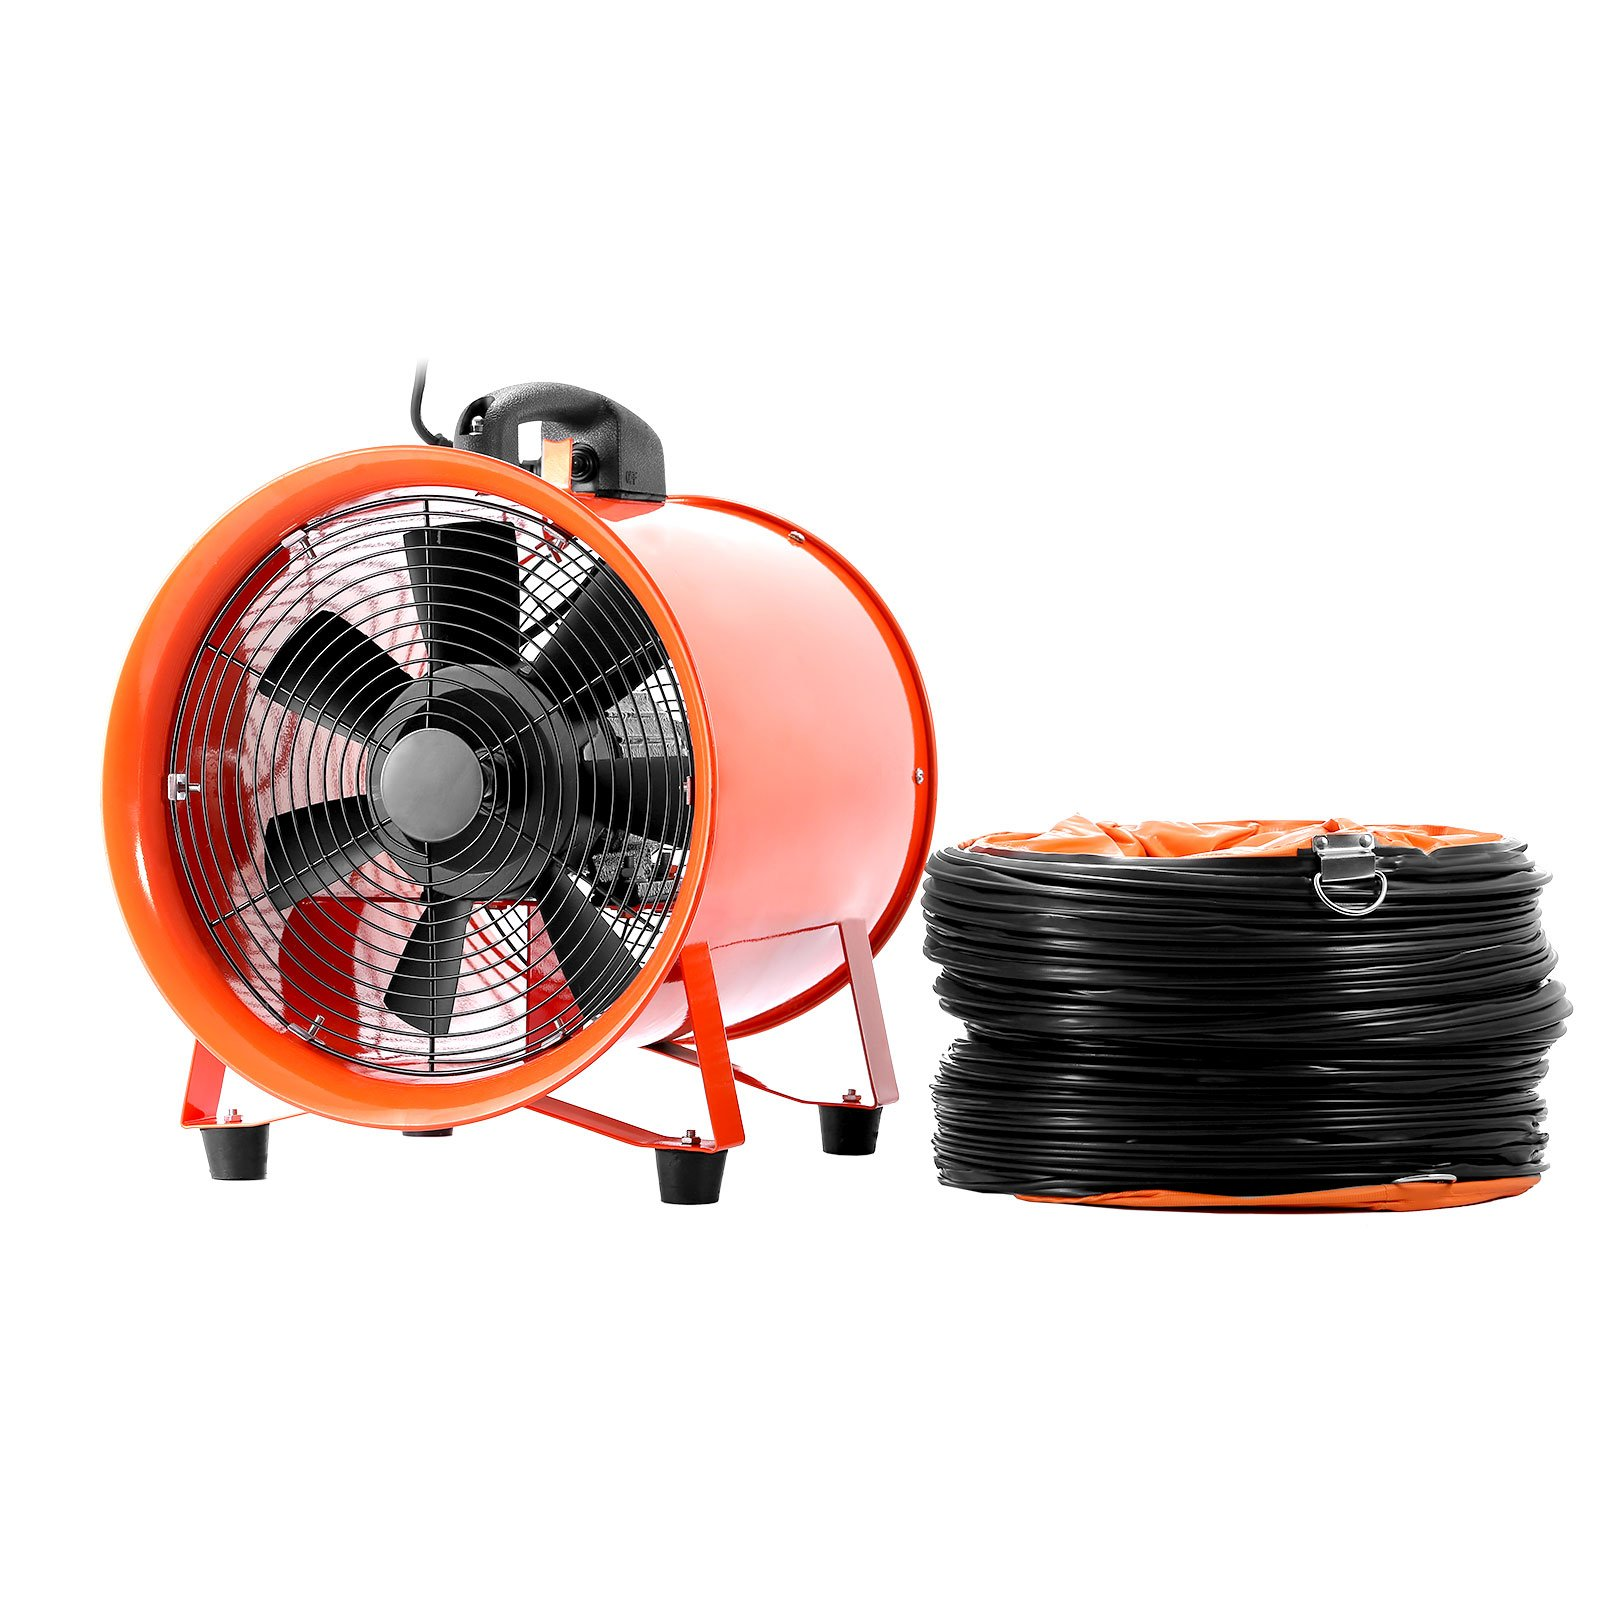 LOVSHARE Ventilator Blower 5M Duct 10 Inch 1518 CFM Portable Industrial Fan 2800 RPM 0.43 HP Workshop Fume Extractor Fan High Velocity Blower Fan with Retractable Duct (10 inch with duct)